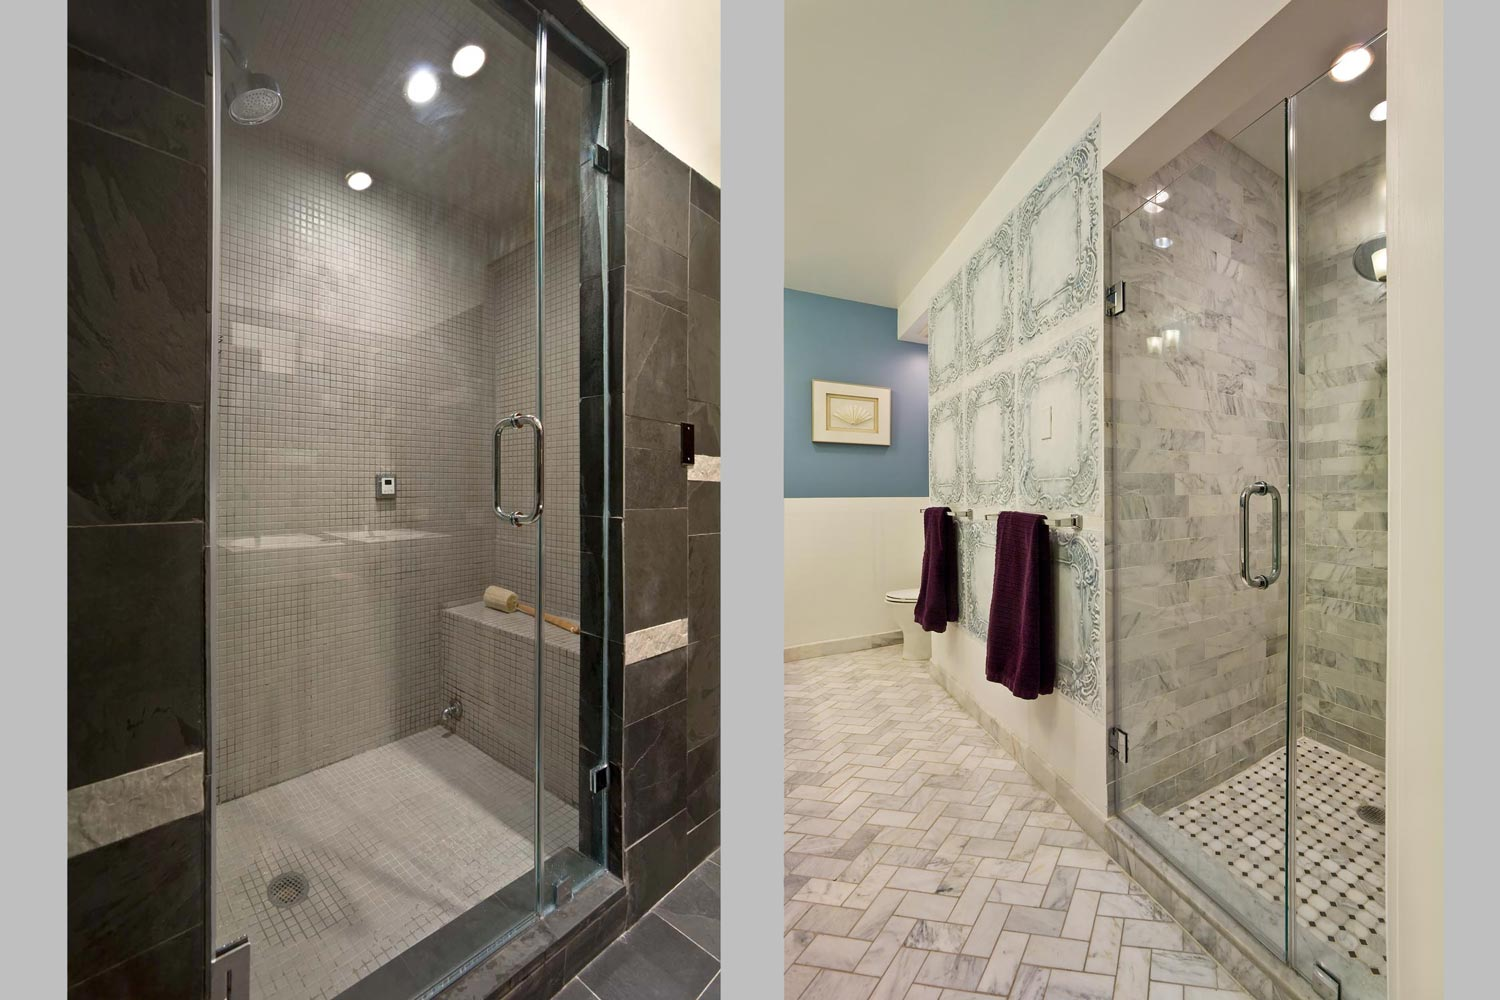 New bathrooms, flooring and central air were installed throughout this residential project by OCV Architects.